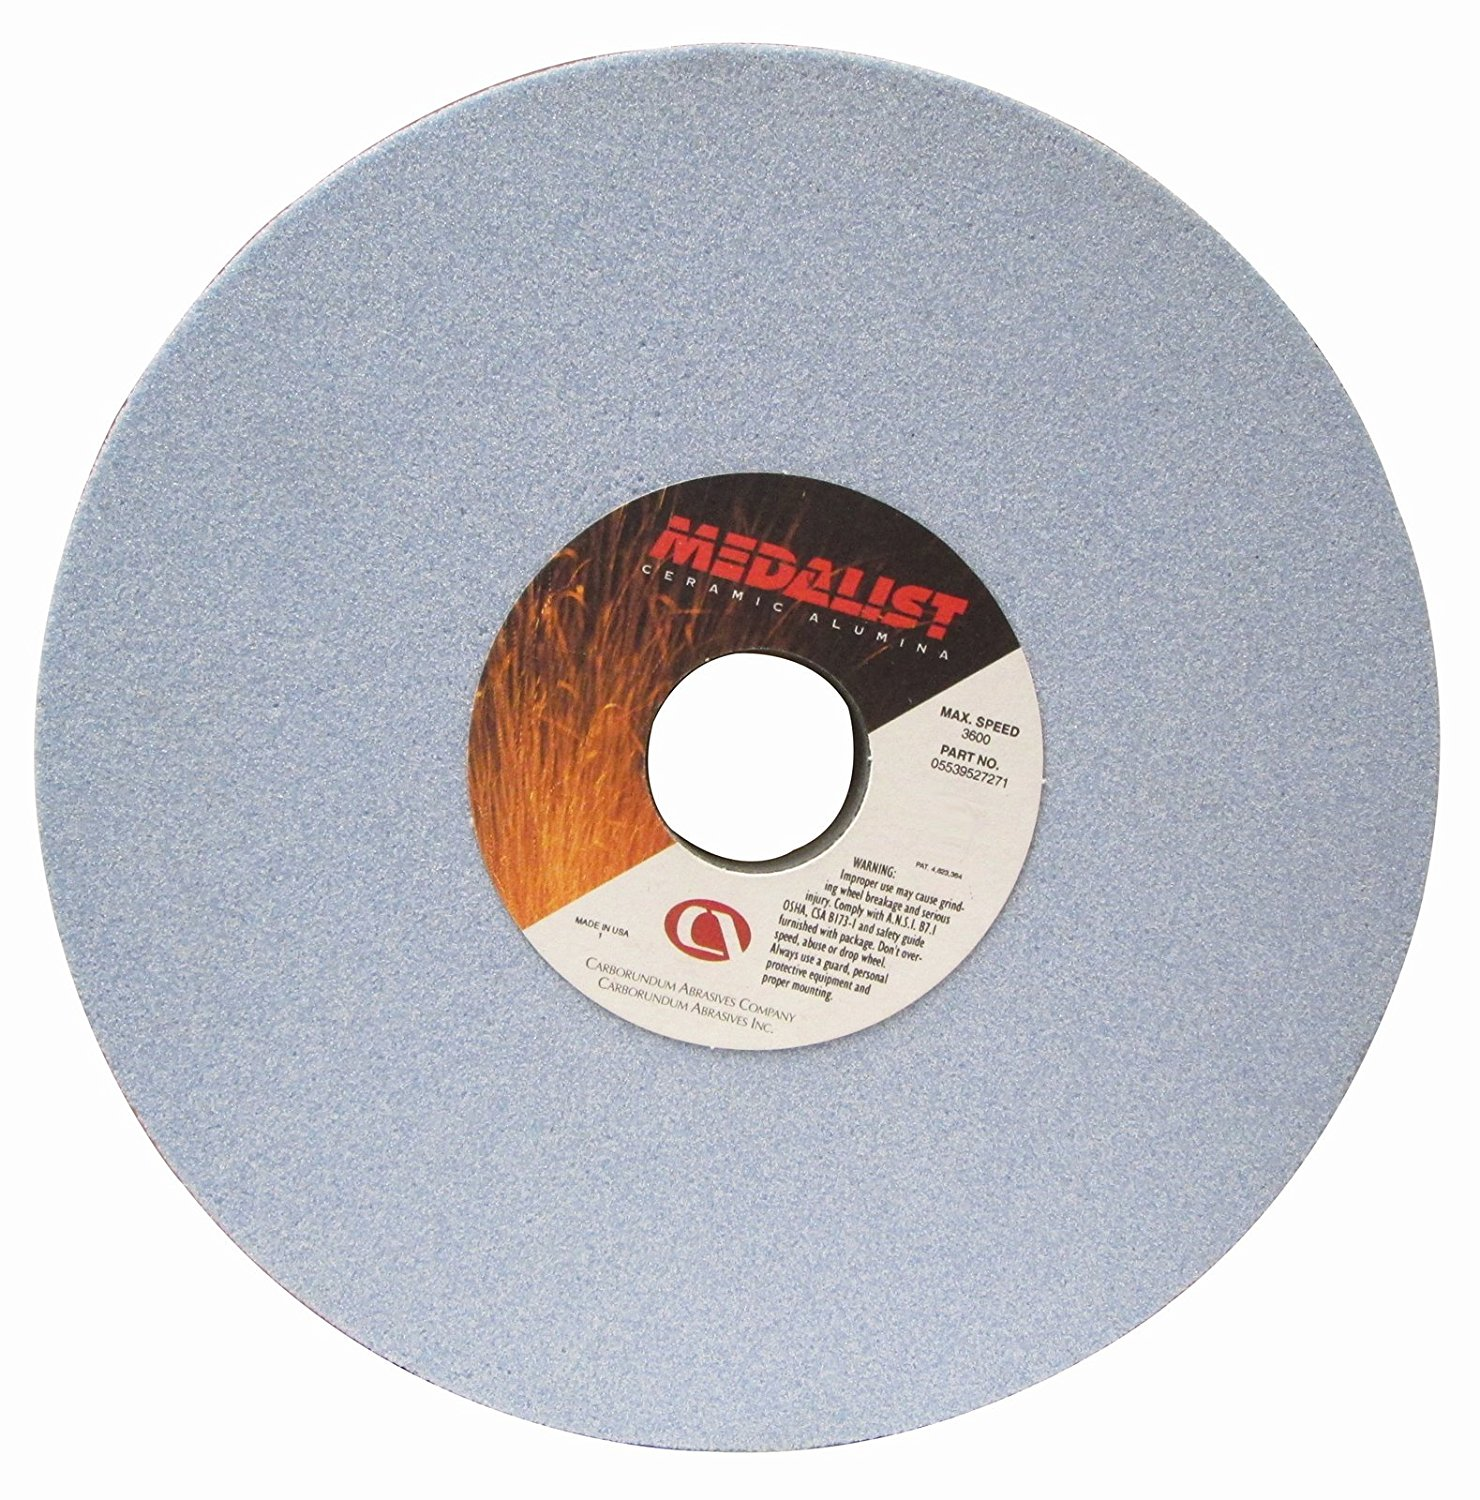 Type 01 No Recess Specification: RA46-J8-V8 Size: 6 x 1//2 x 1-1//4 STYLE: Straight RADIAC Ruby Surface Grinding Wheel